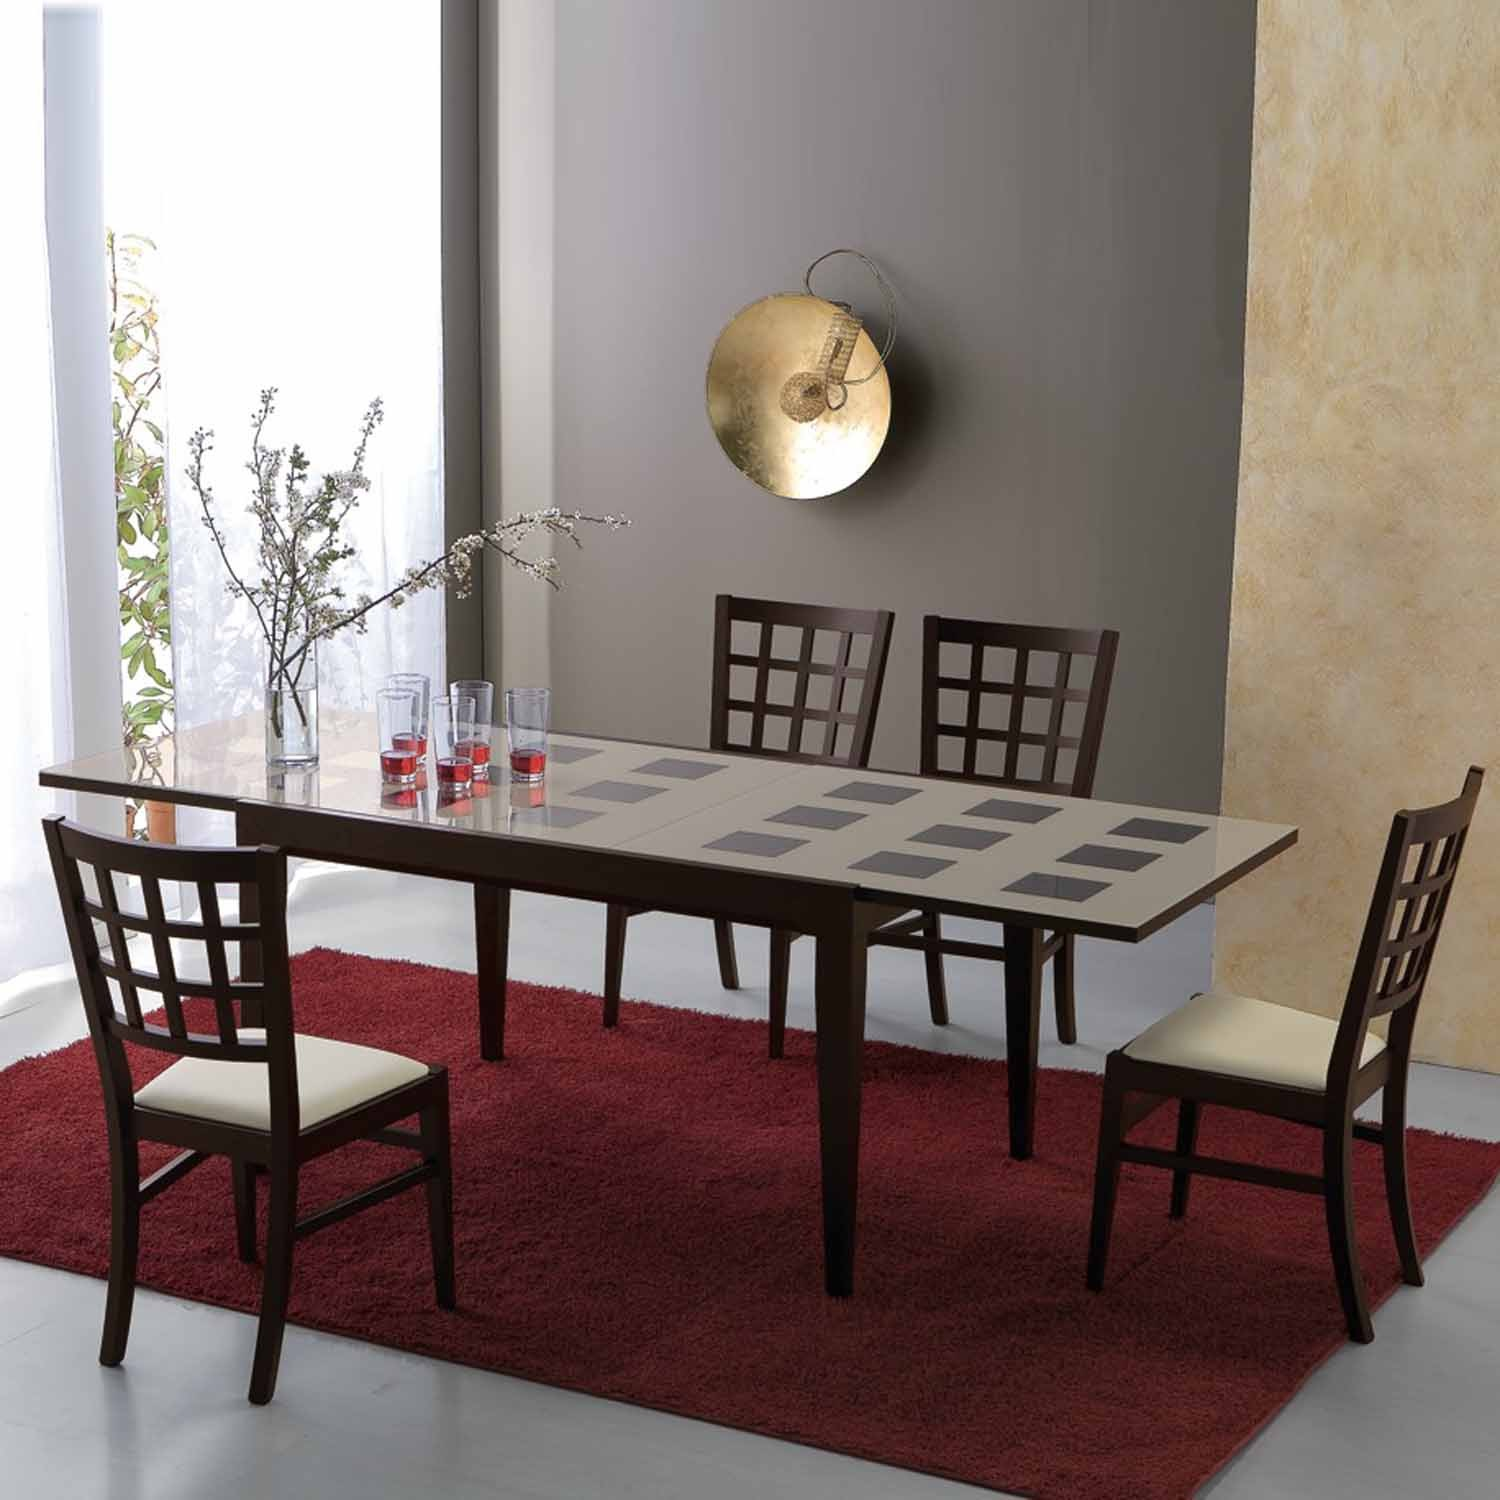 Fly Tables Connubia Tables Customize Your Dining With Expansive